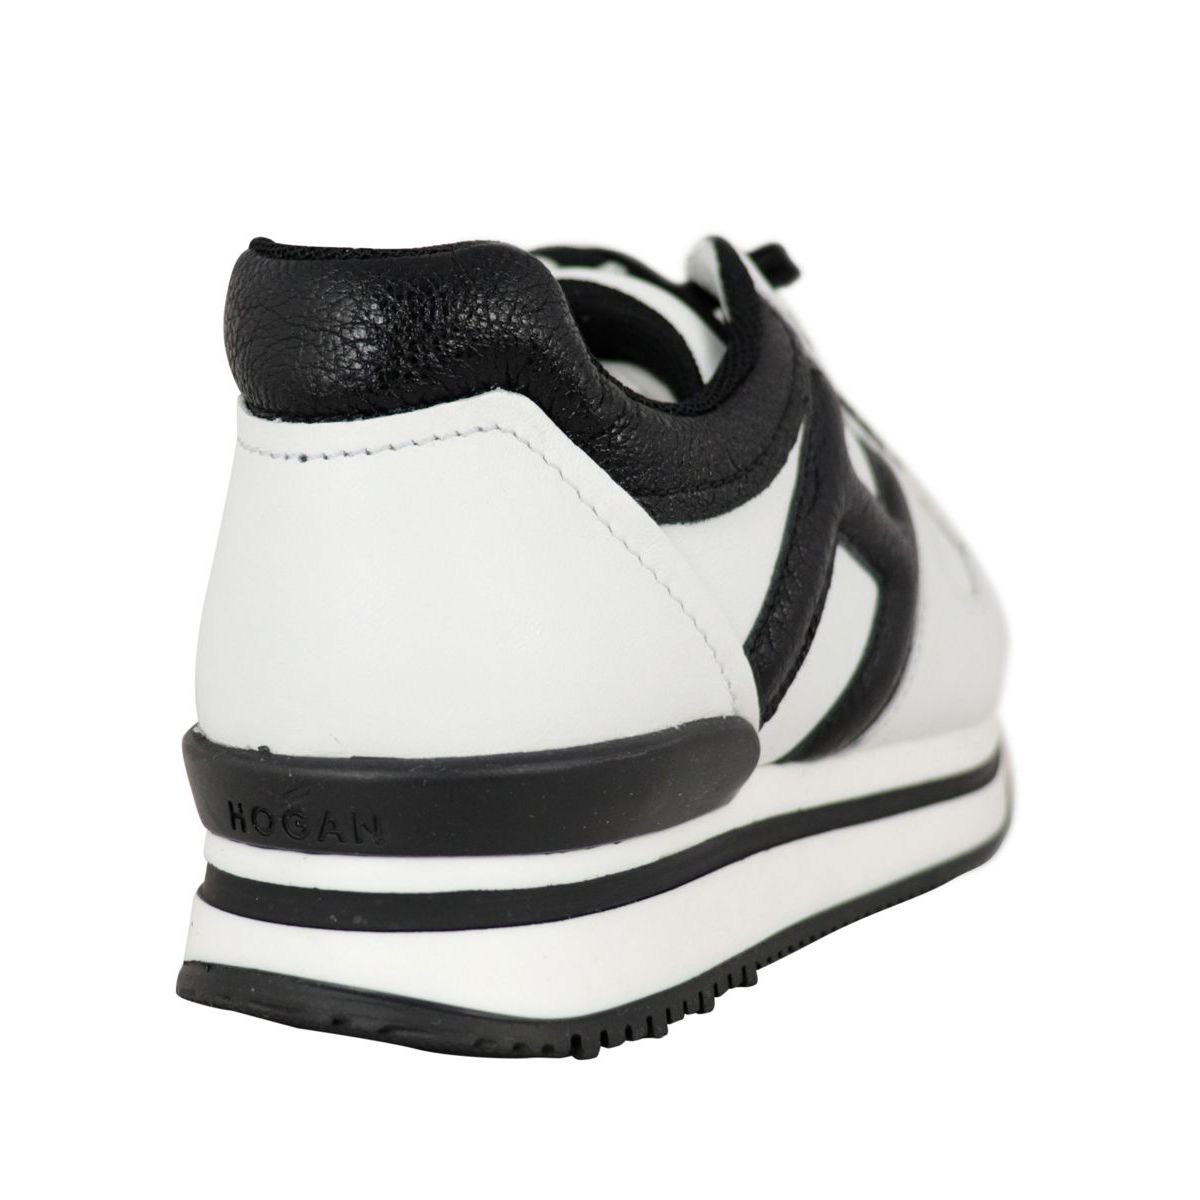 J222 two-tone leather sneakers White black Hogan